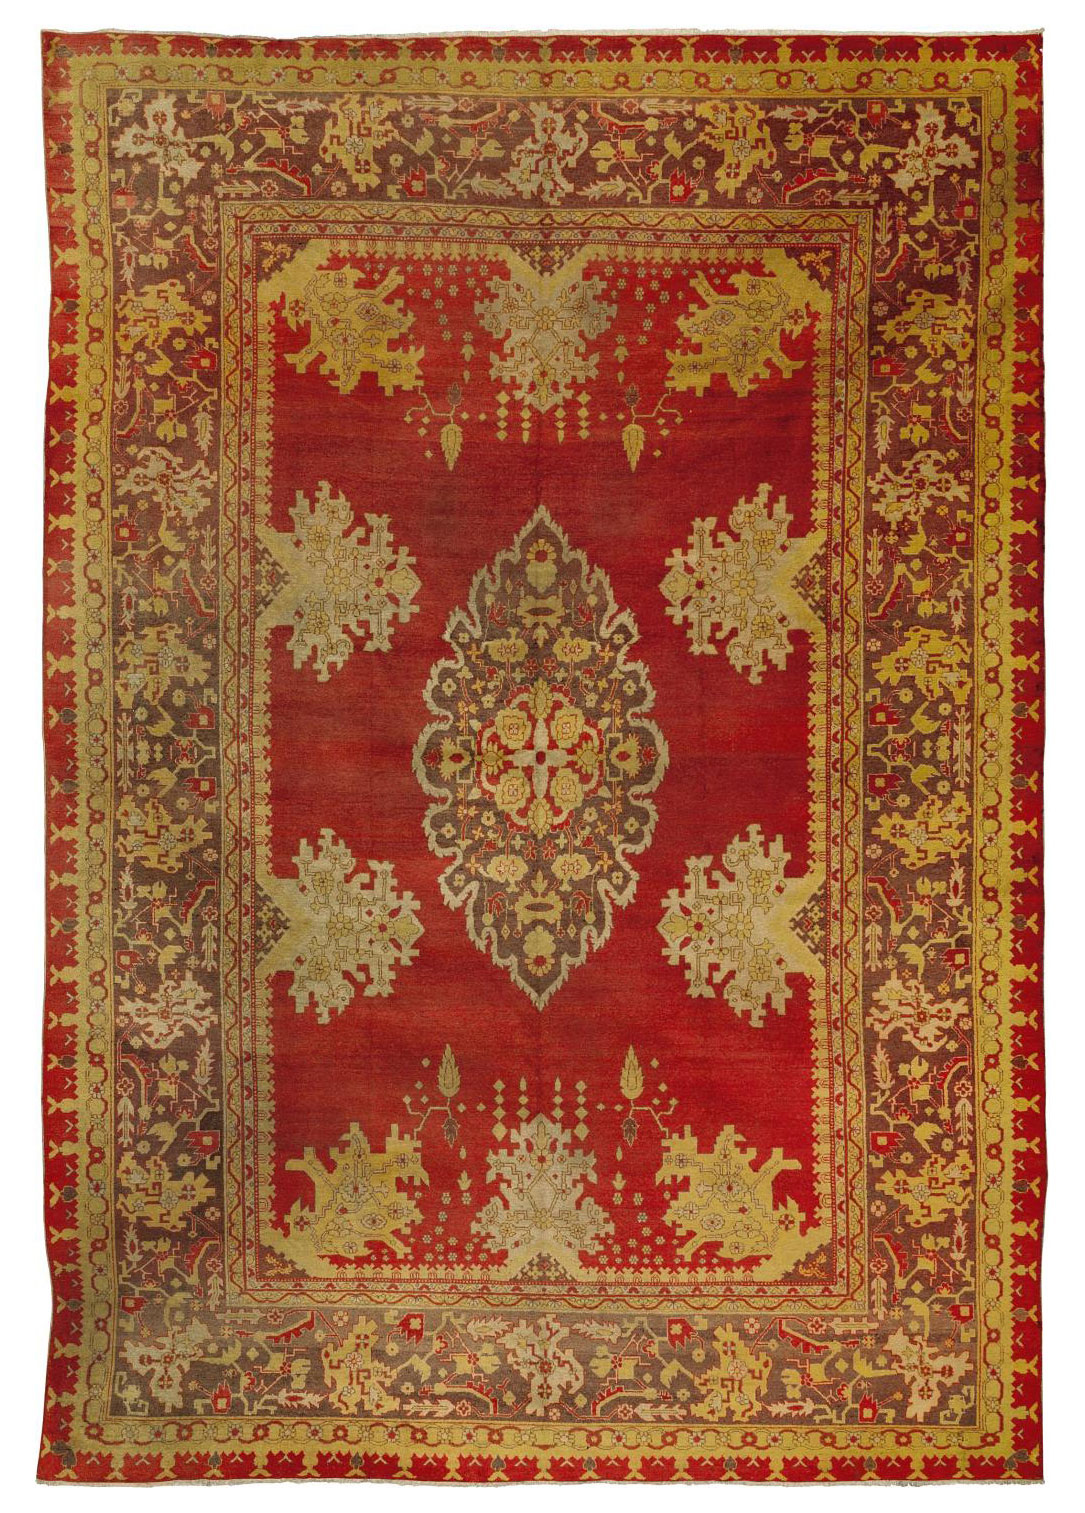 AN UNUSUAL AMRITZAR CARPET, NO